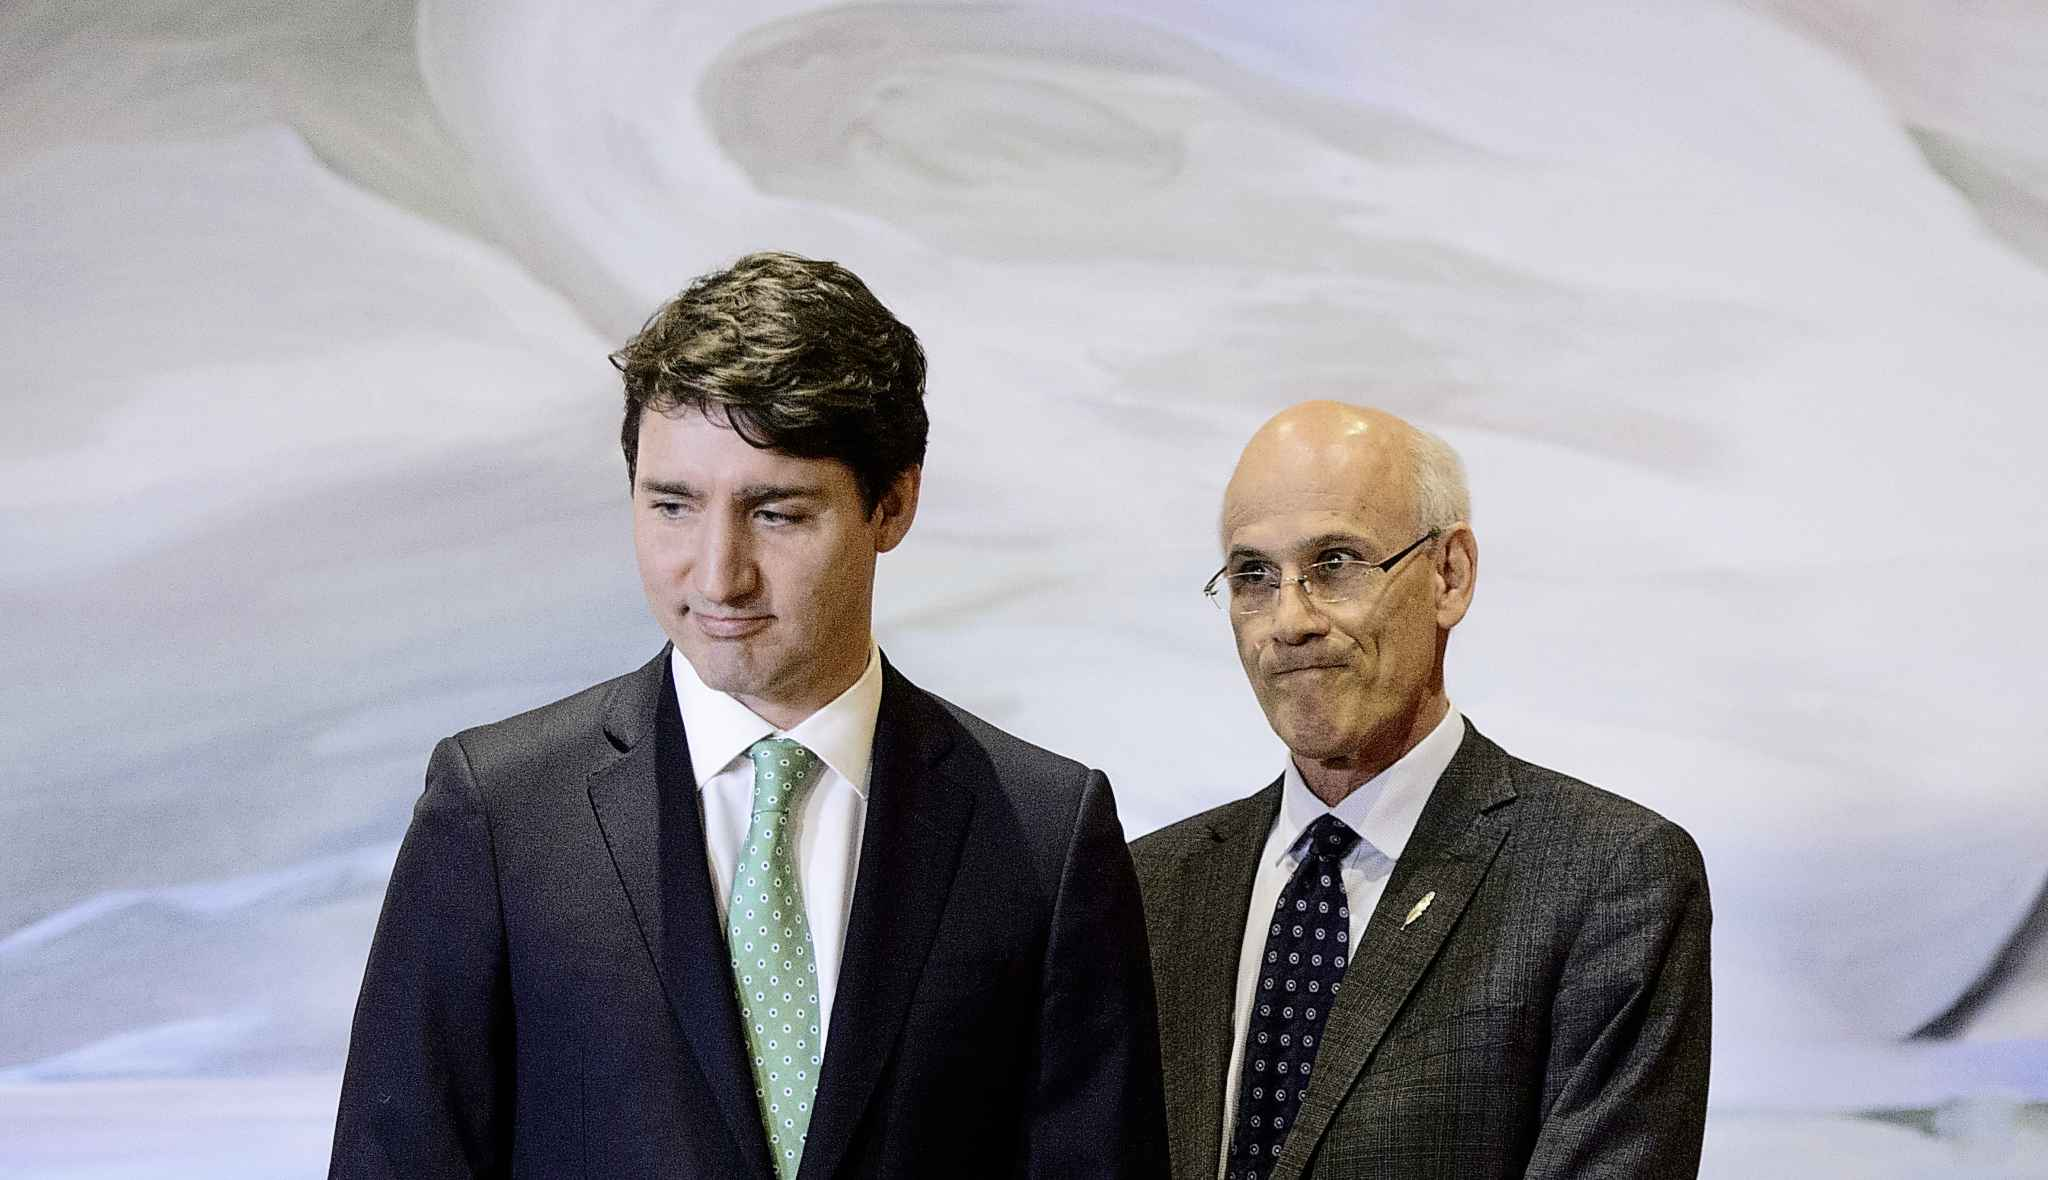 Prime Minister Justin Trudeau and Clerk of the Privy Council Michael Wernick attend a swearing in ceremony at Rideau Hall in Ottawa on Friday, March 1, 2019. (Sean Kilpatrick / The Canadian Press files)